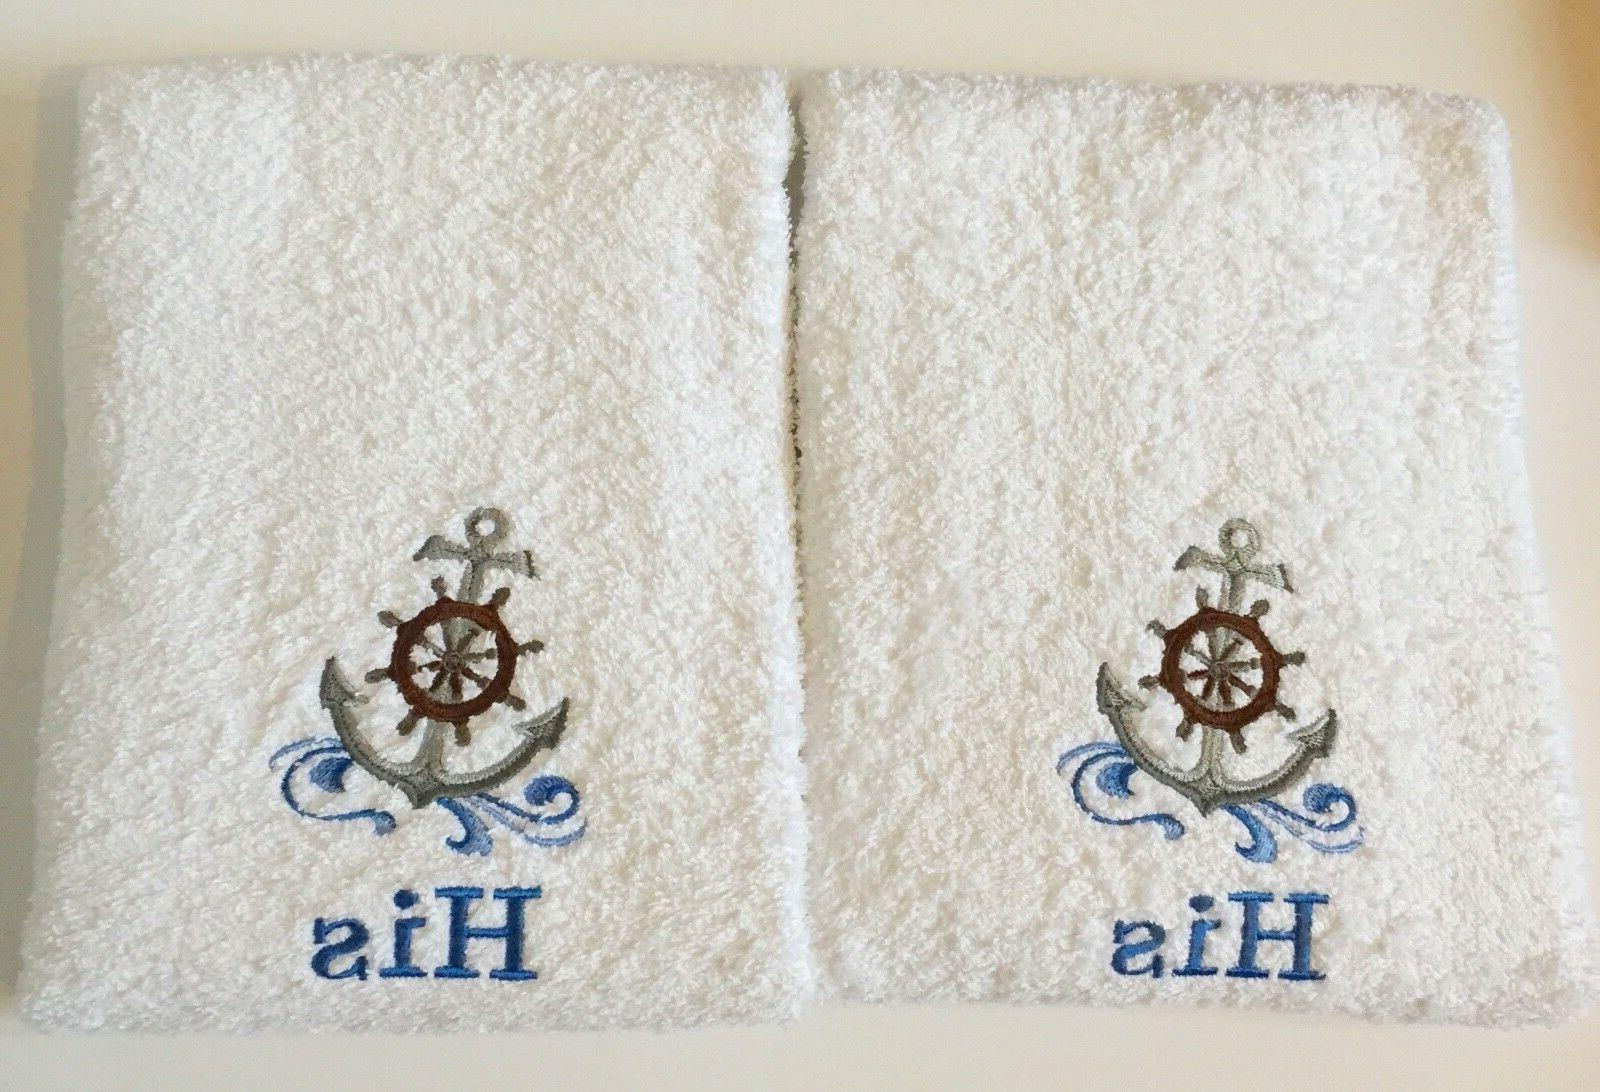 Embroidered Towels, His & His Anniversary/Wedding Hand